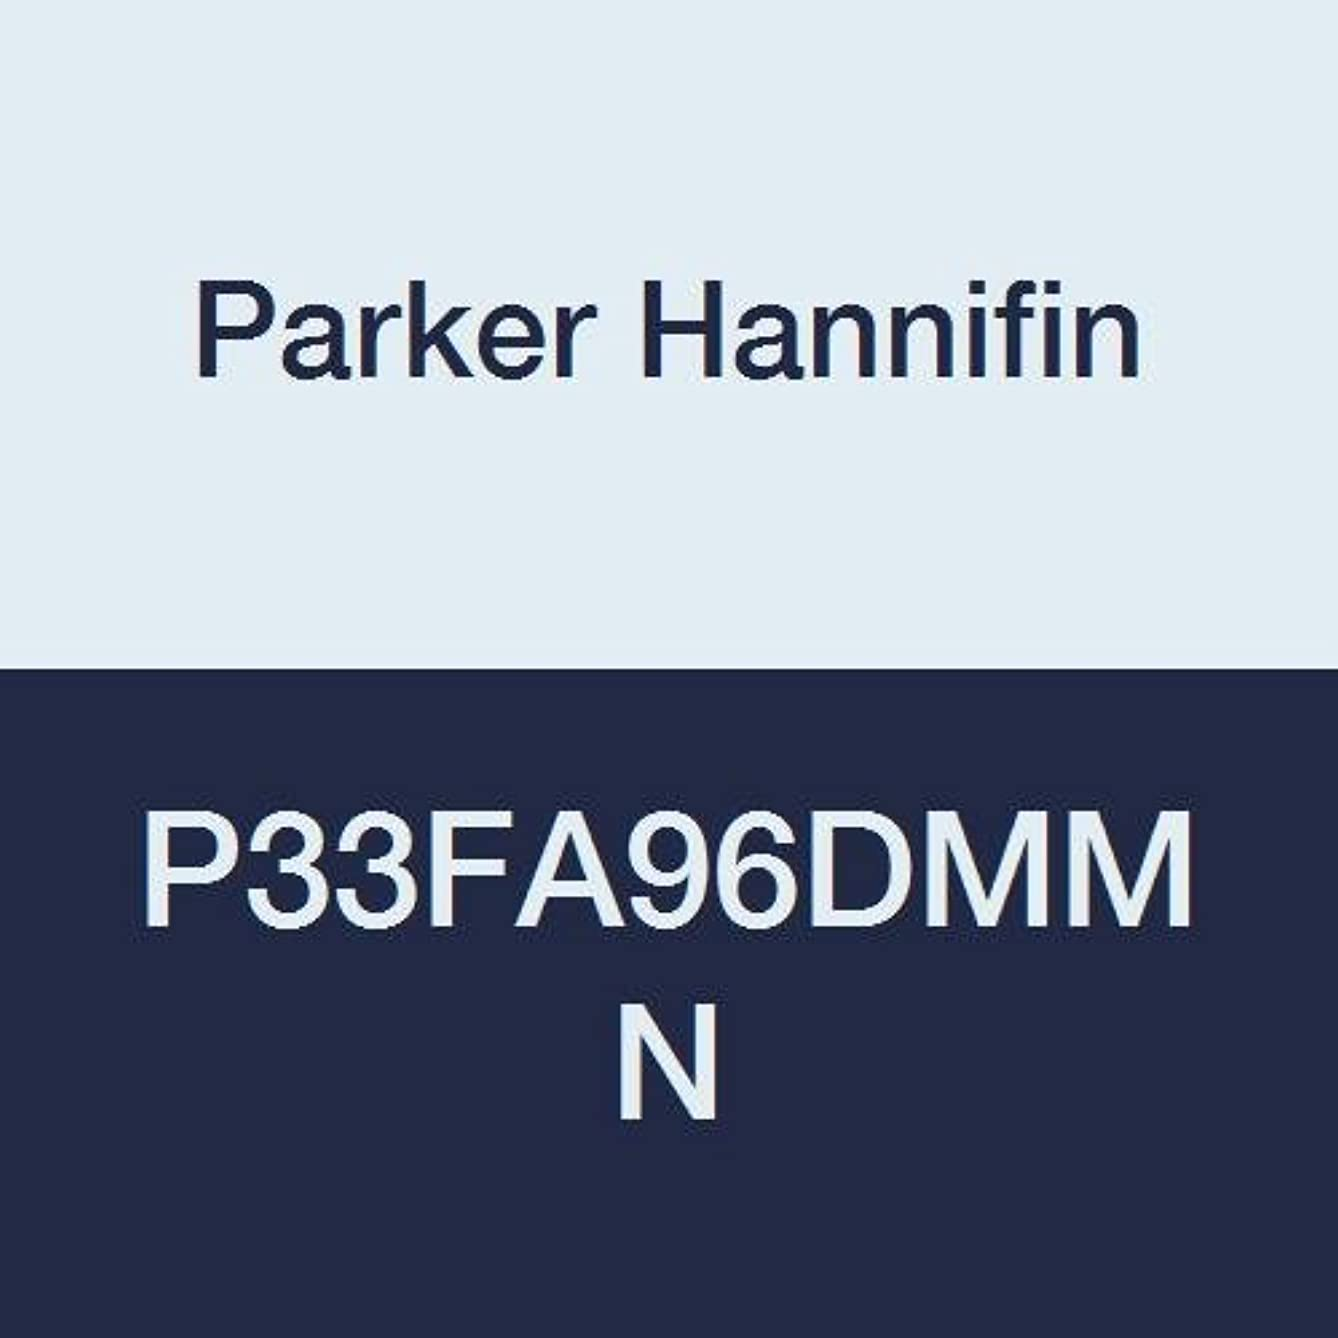 Parker Hannifin P33FA96DMMN Series P33F Aluminum Standard Coalescing and Adsorber Filter, 0.01 μ Element with DPI, Metal Bowl without Sight Gauge, Manual Drain, No Mounting Bracket, 3/4